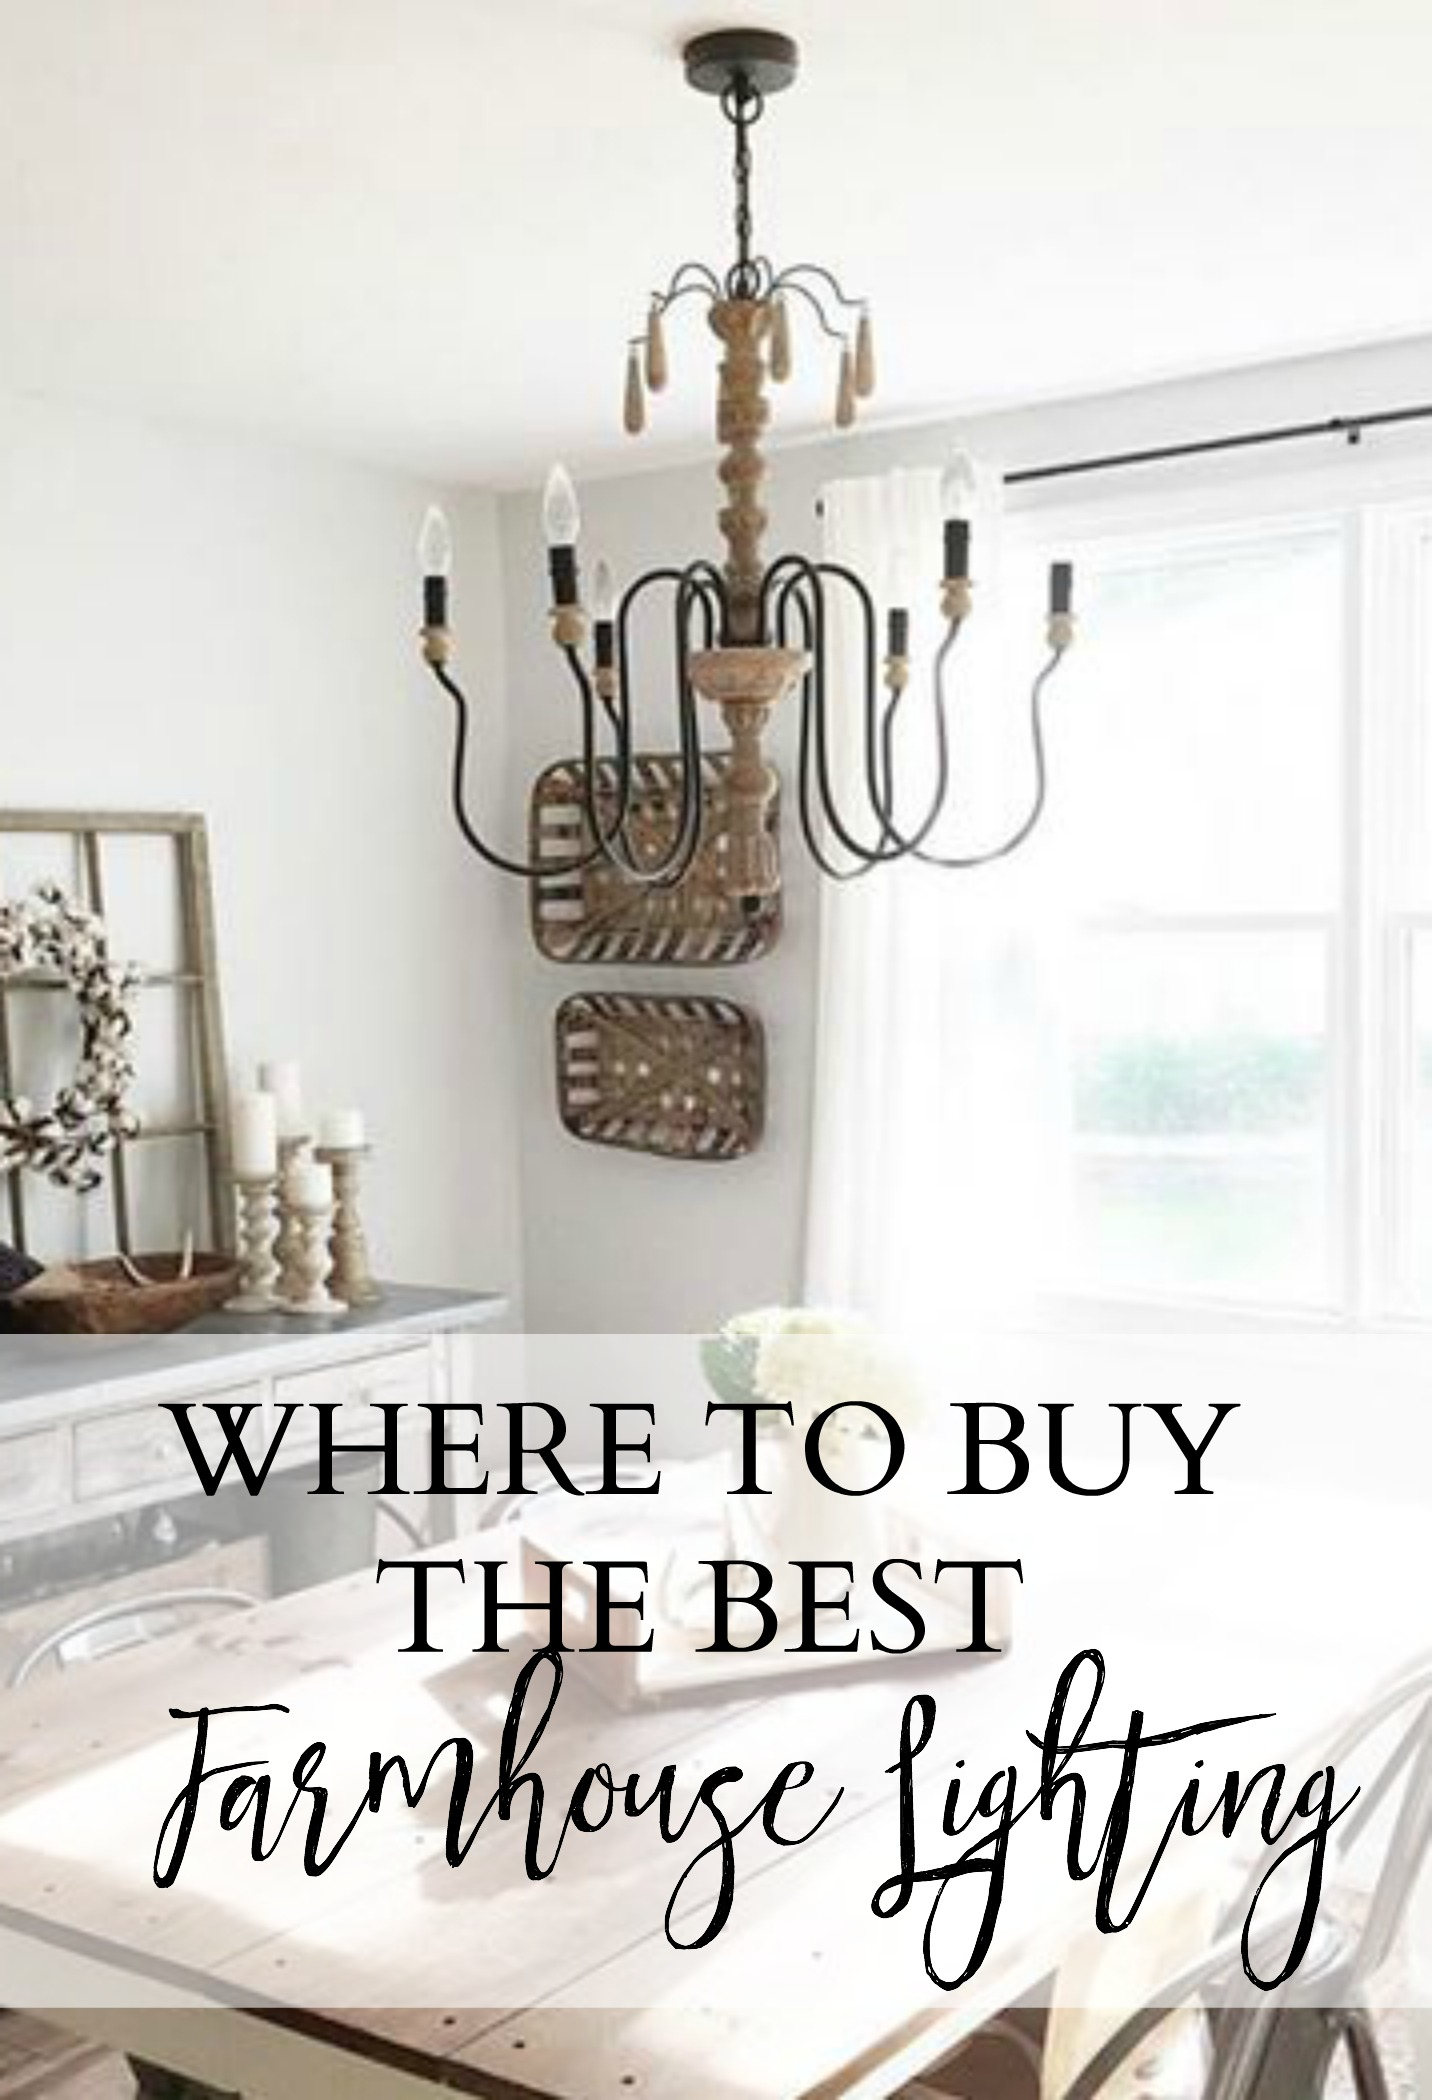 Home  Where To Buy The Best Farmhouse Lighting  Lauren. Food Inspection Scores Minneapolis Web Design. Will A Tesco Mobile Work On O2. Run Command For Event Viewer. Security Systems Huntsville Al. Medical Assistant Job Descriptions. Healthcare Administration Bachelors. School Psychologist Masters Programs. Health Sciences Major Careers